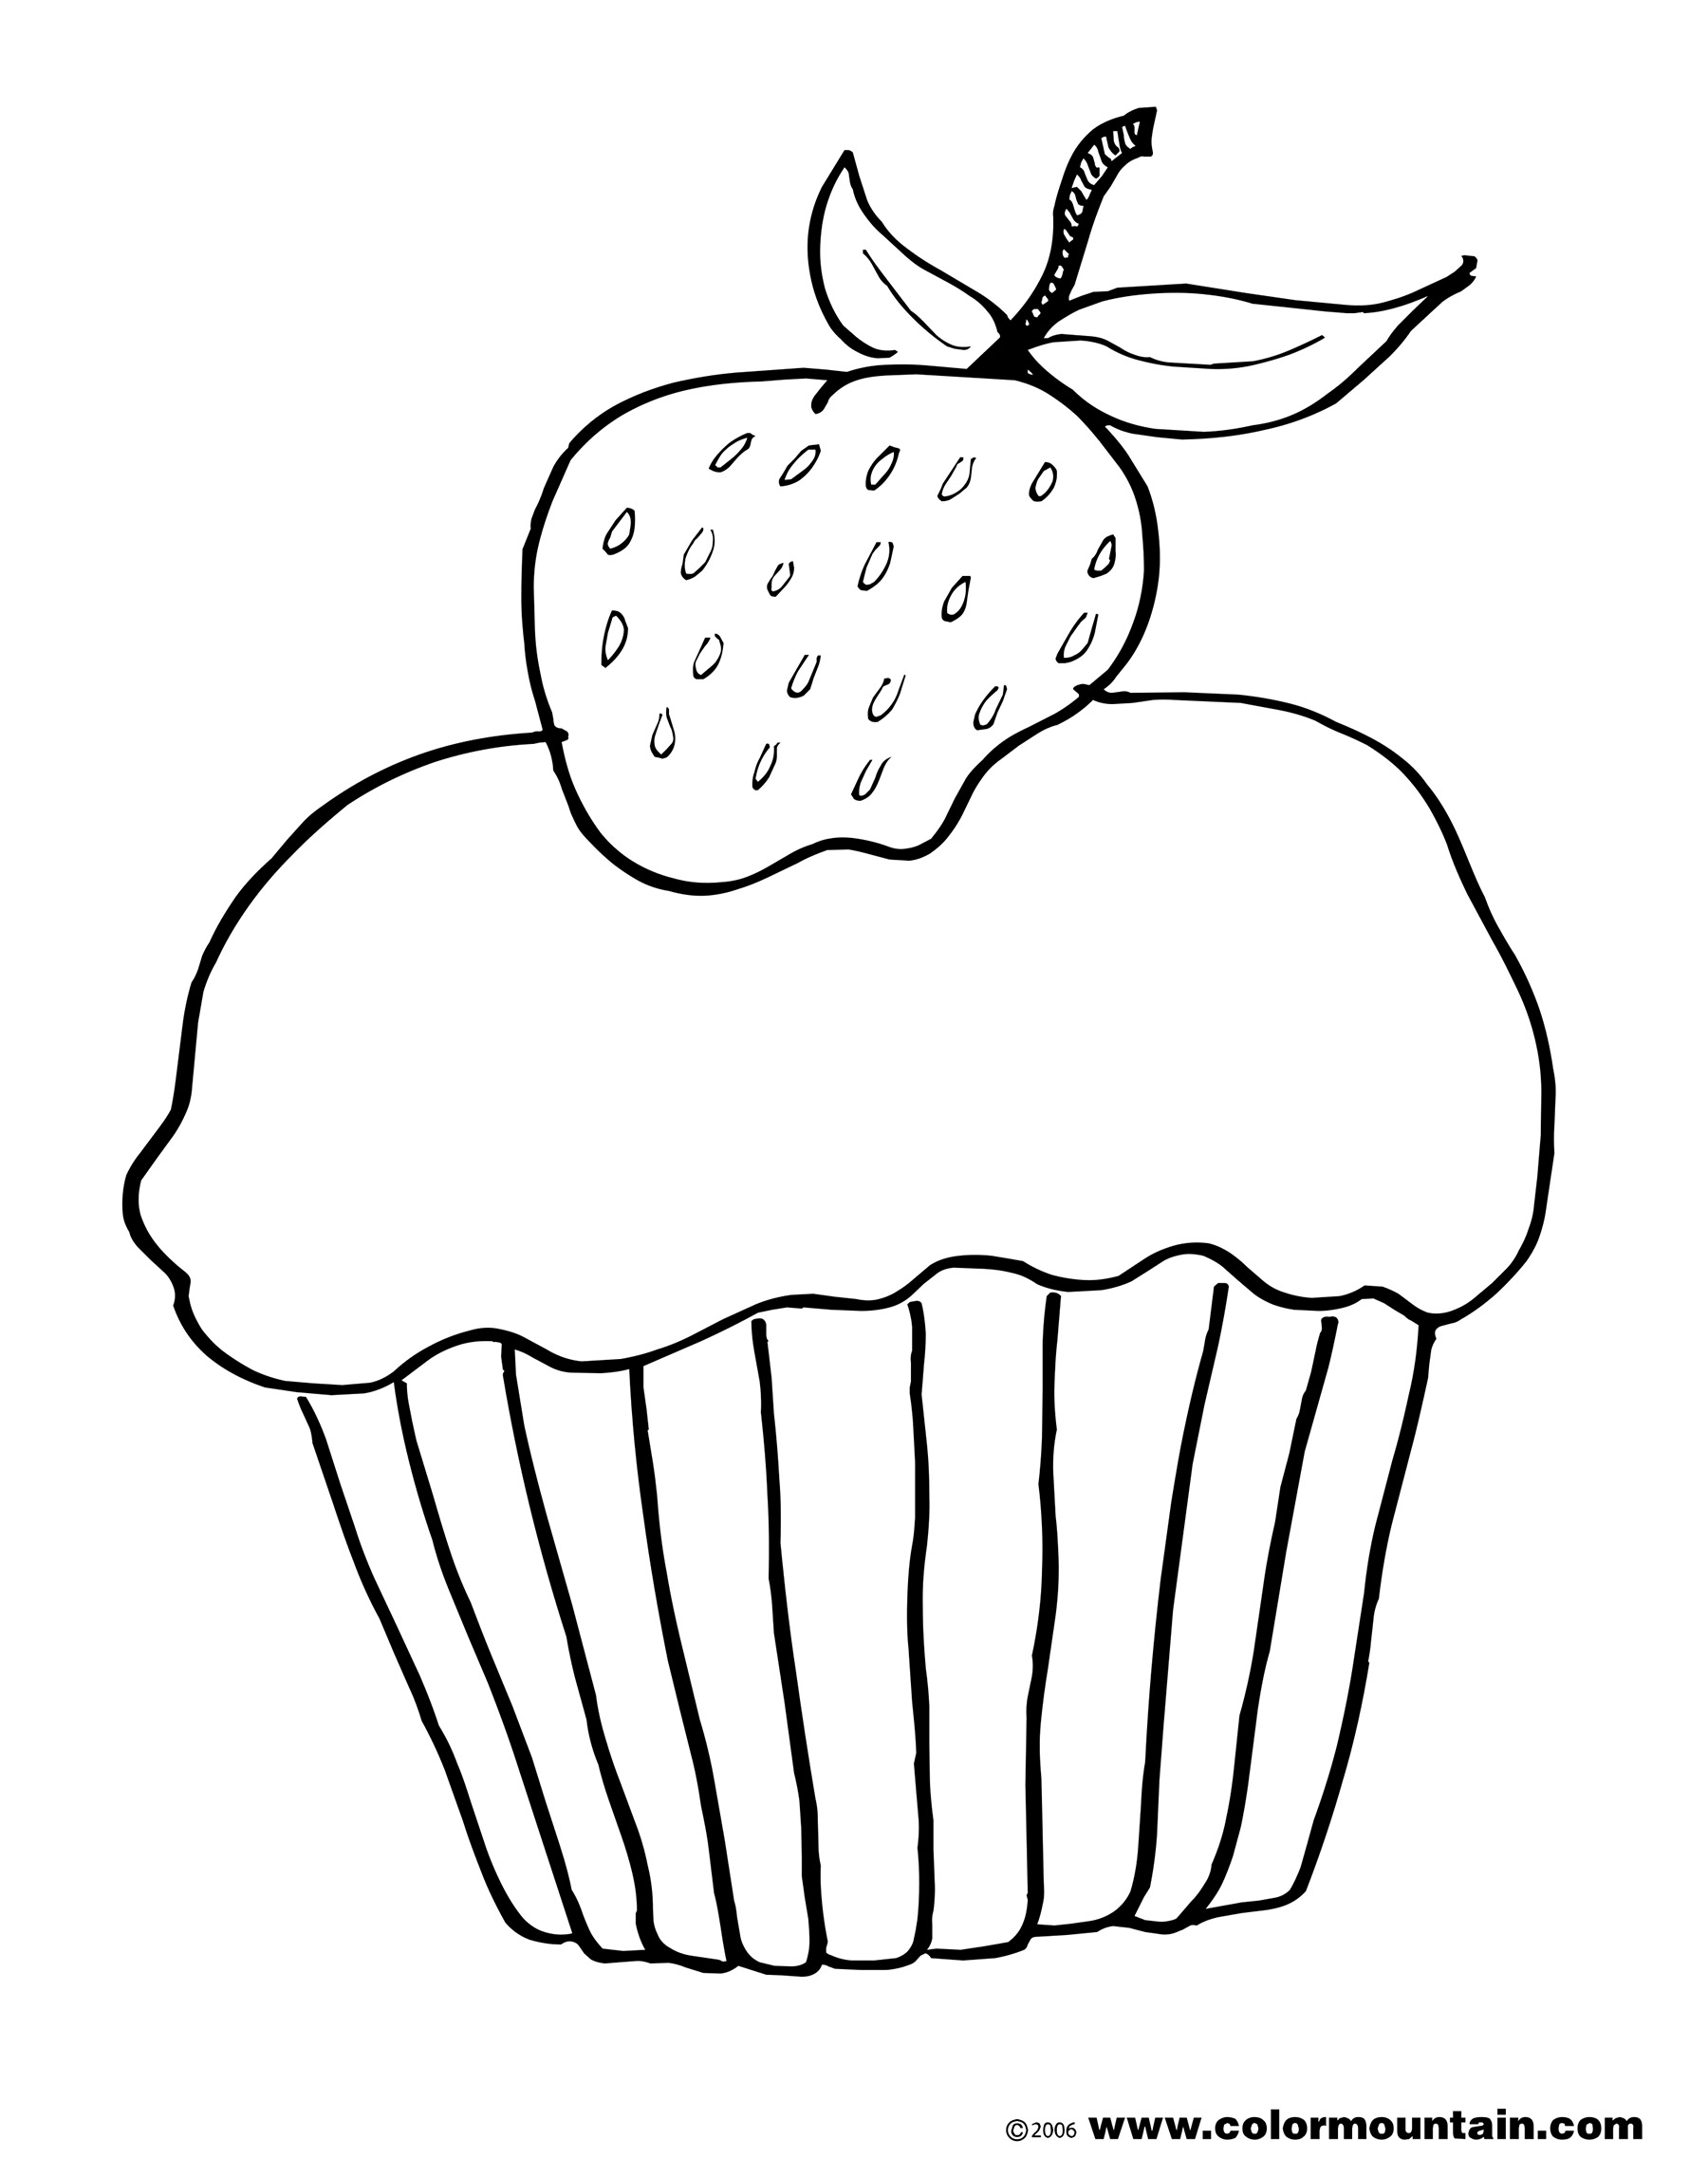 Strawberry Outline Drawing At Getdrawings